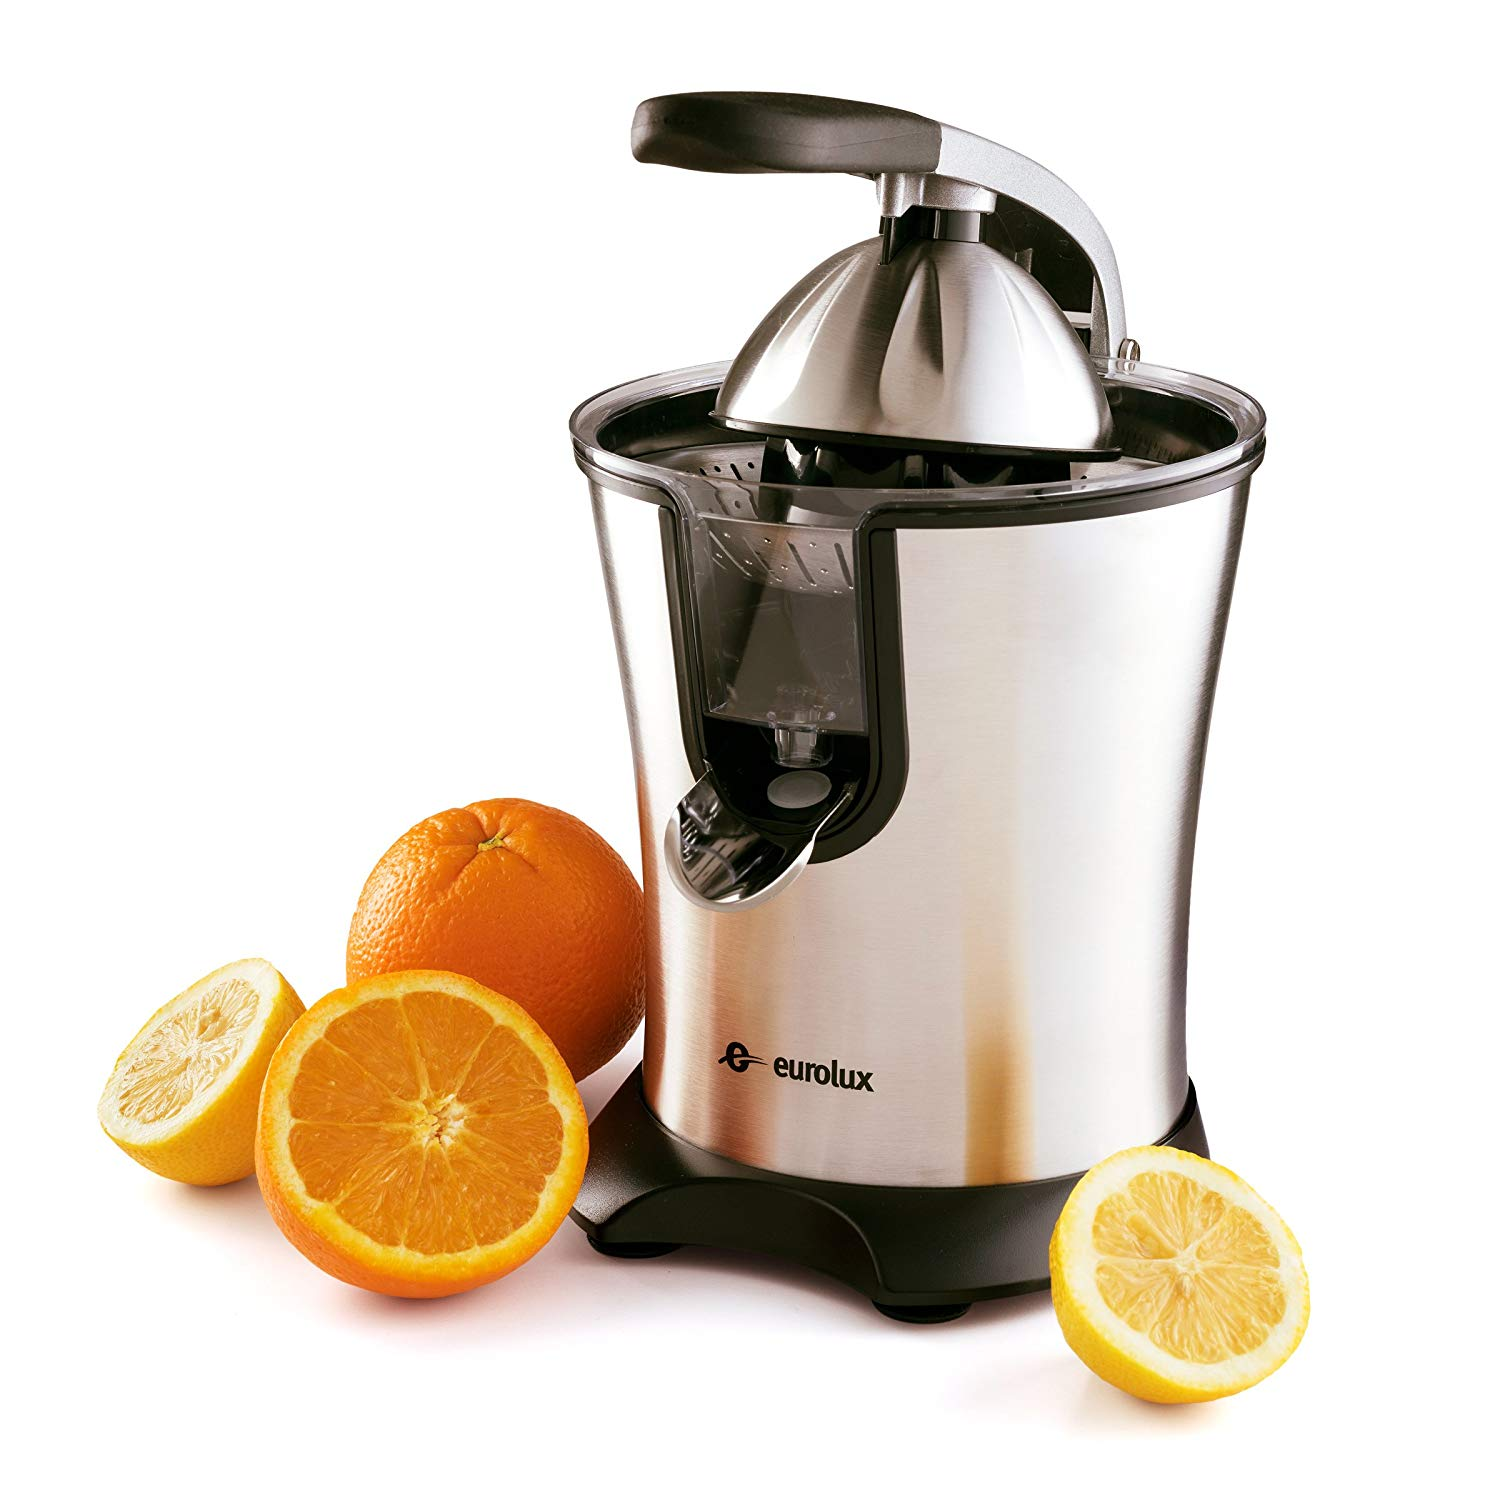 Eurolux Electric Orange Juicer Squeezer Stainless Steel 160 Watts of Power